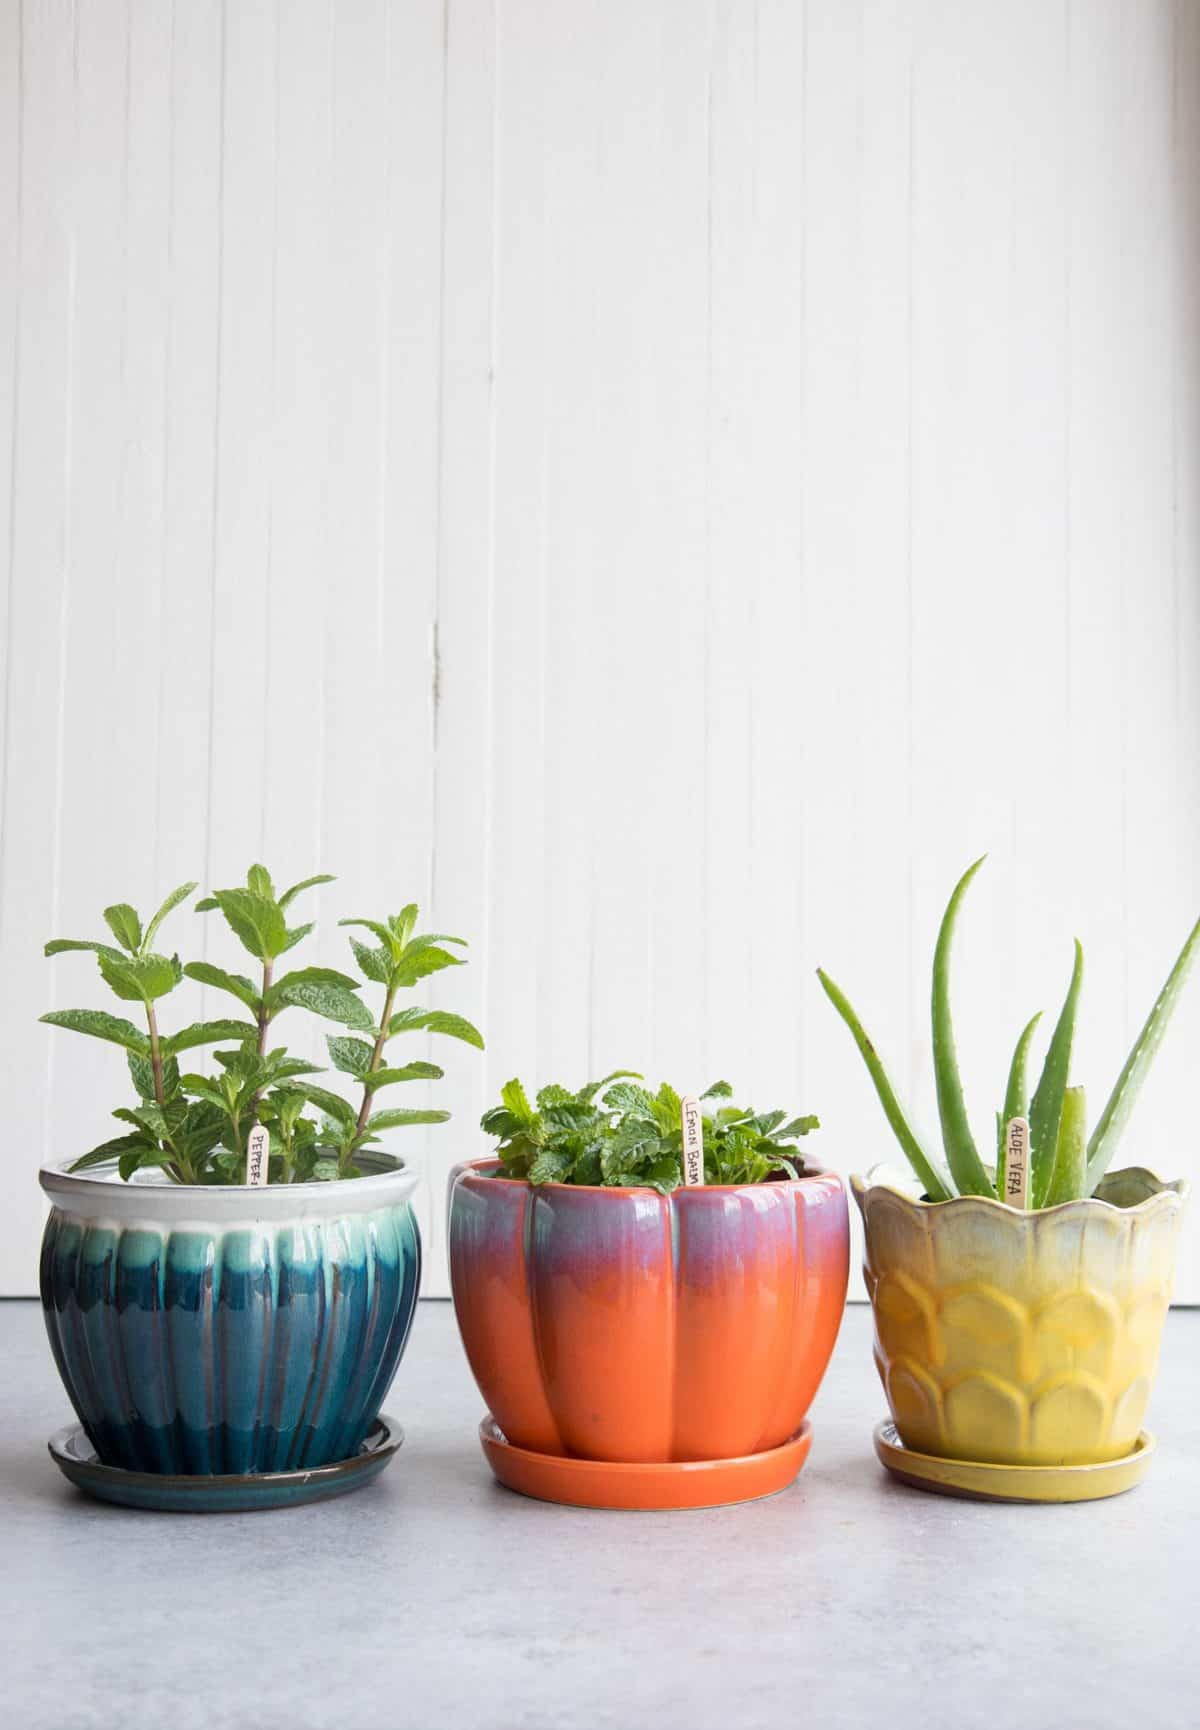 Three potted medicinal herbs: peppermint in a blue pot, lemon balm in a red-orange pot, and aloe vera in a yellow pot